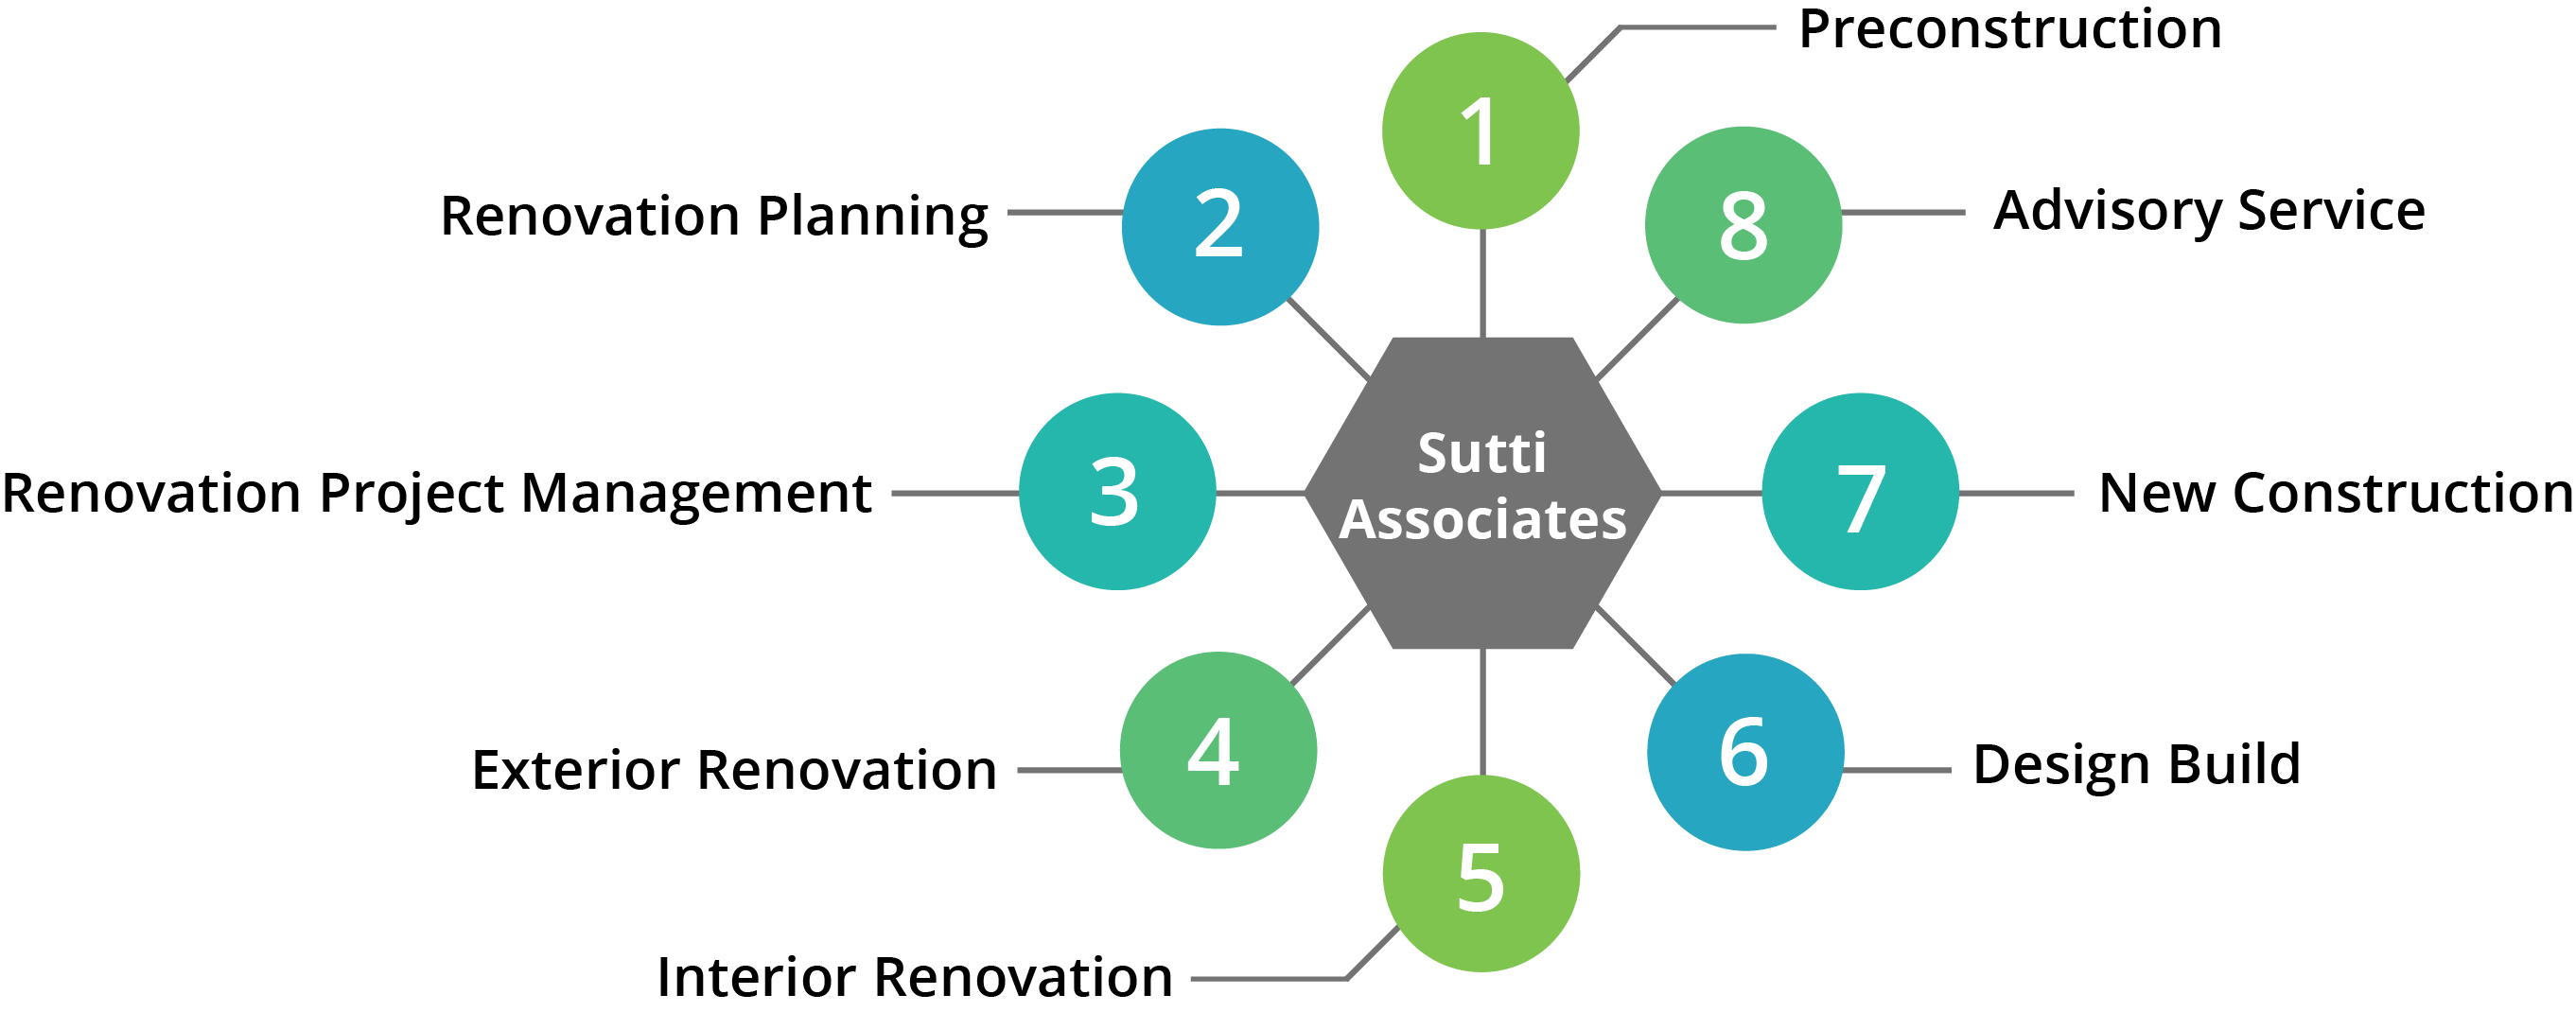 Hospitality services chart. 1. Preconstruction, 2. Renovation Planning, 3. Prenovation Project Management, 4. Exterior Renovation, 5. Interior Renovation, 6. Design Build, 7. New Construction, 8. Advisory Service